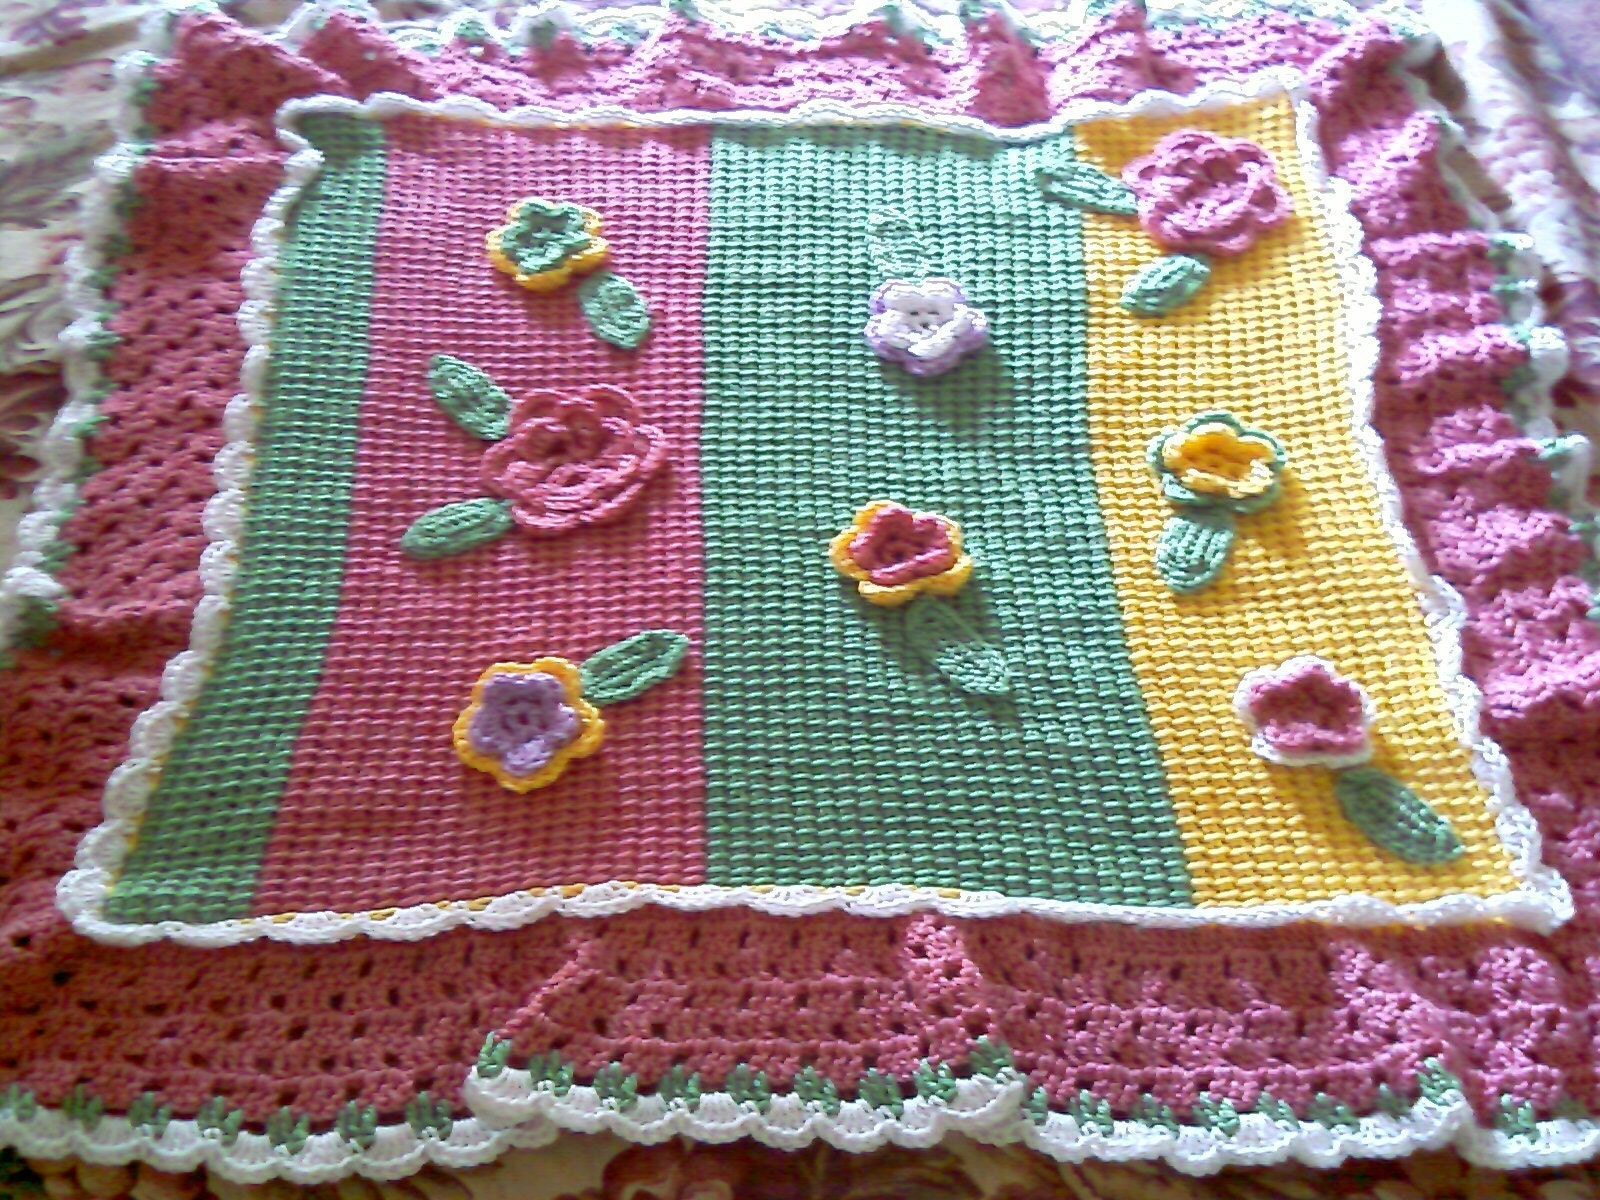 Handmade Baby Blankets - Hand Made Crocheted Baby Blankets and Afghans